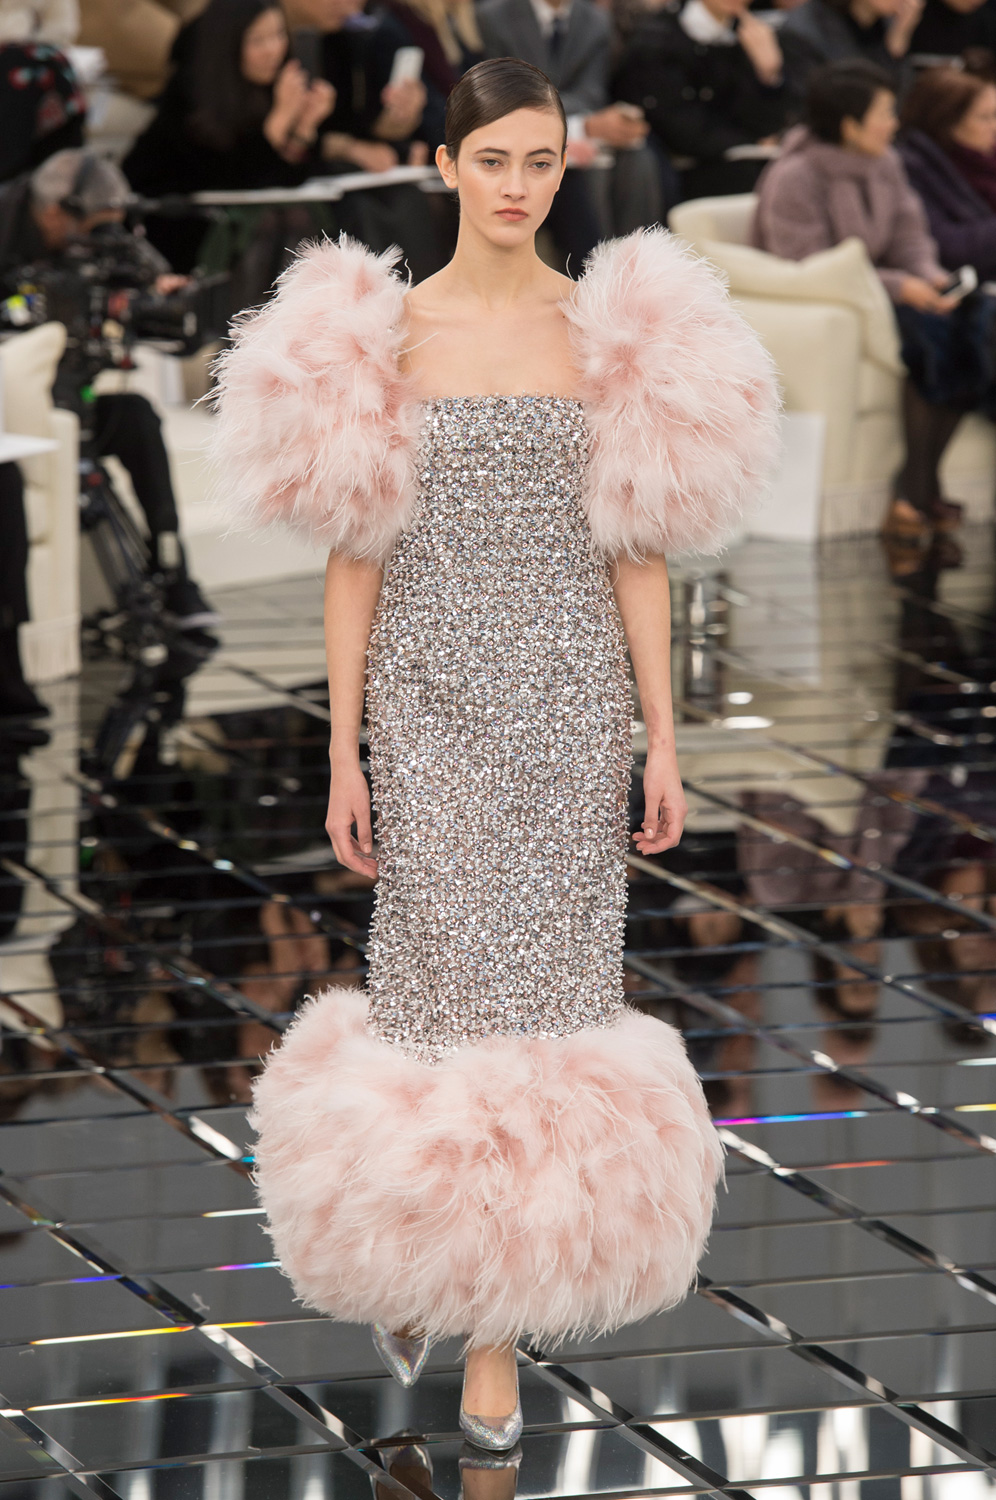 A Fine Feathered Collection at Chanel Spring 2017 Couture